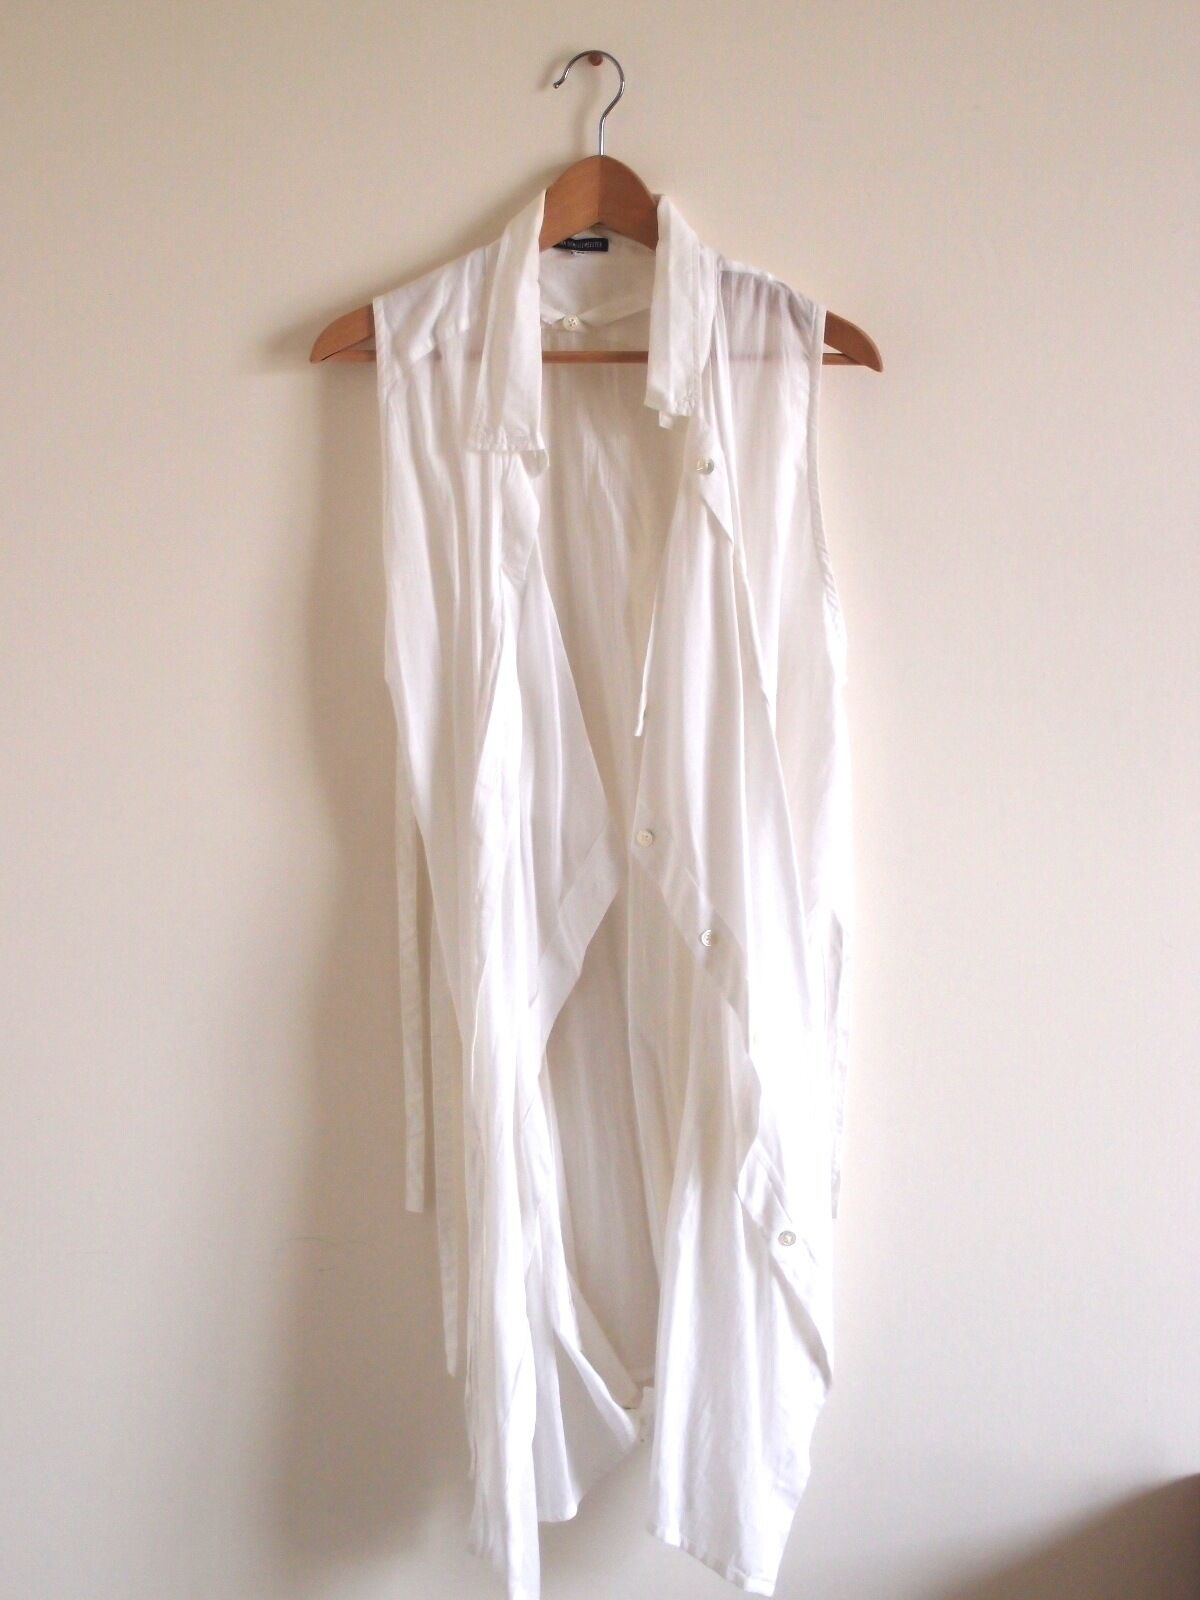 Ann Demeulemeester Sleeveless Long Long Long Shirt Dress in White 59f91e